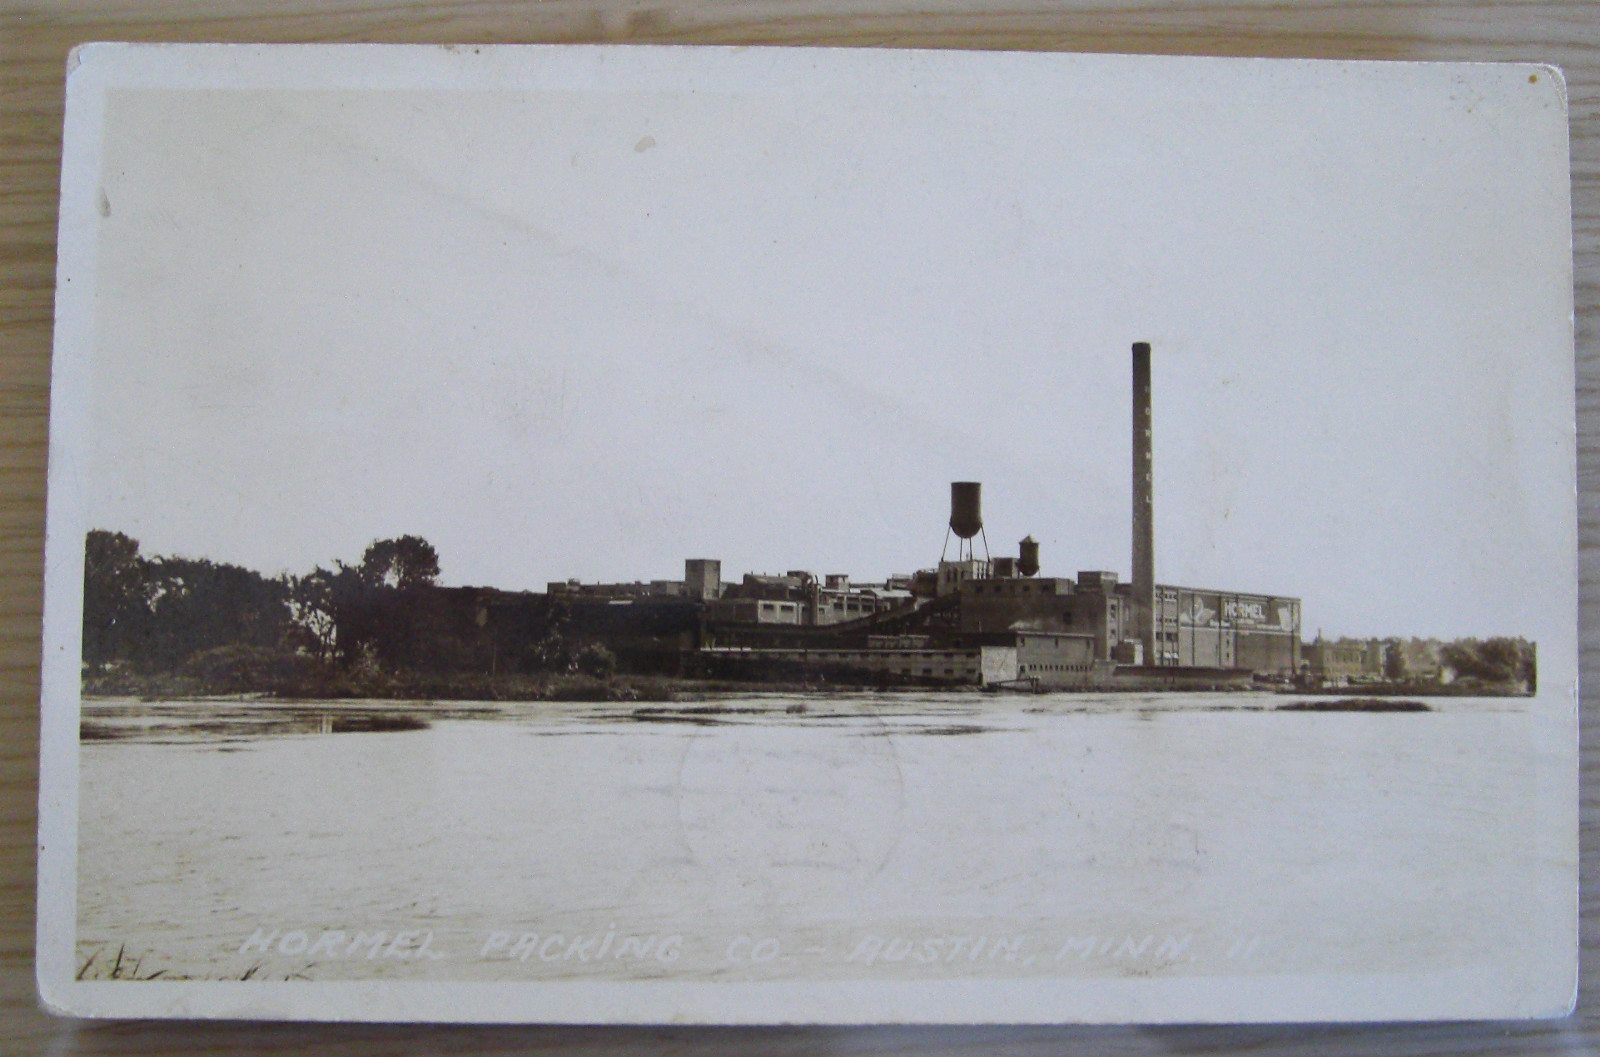 Picture from 1926 showing the old Hormel Foods plant in Austin